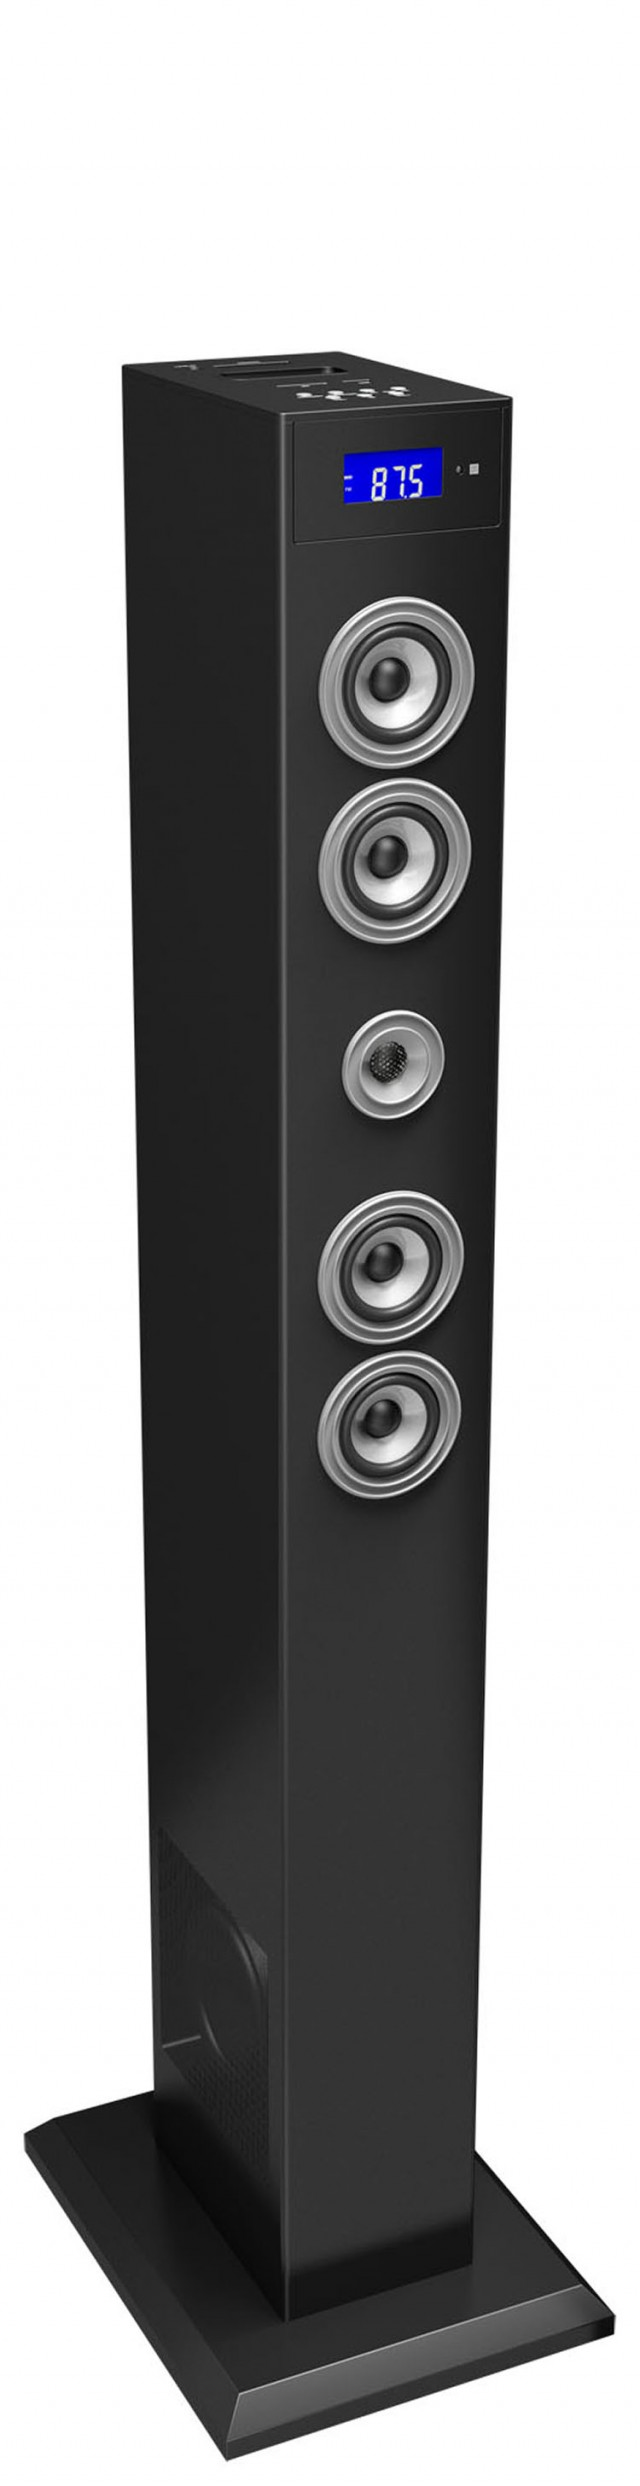 Multimedia tower with adaptador Bluetooth - Packshot